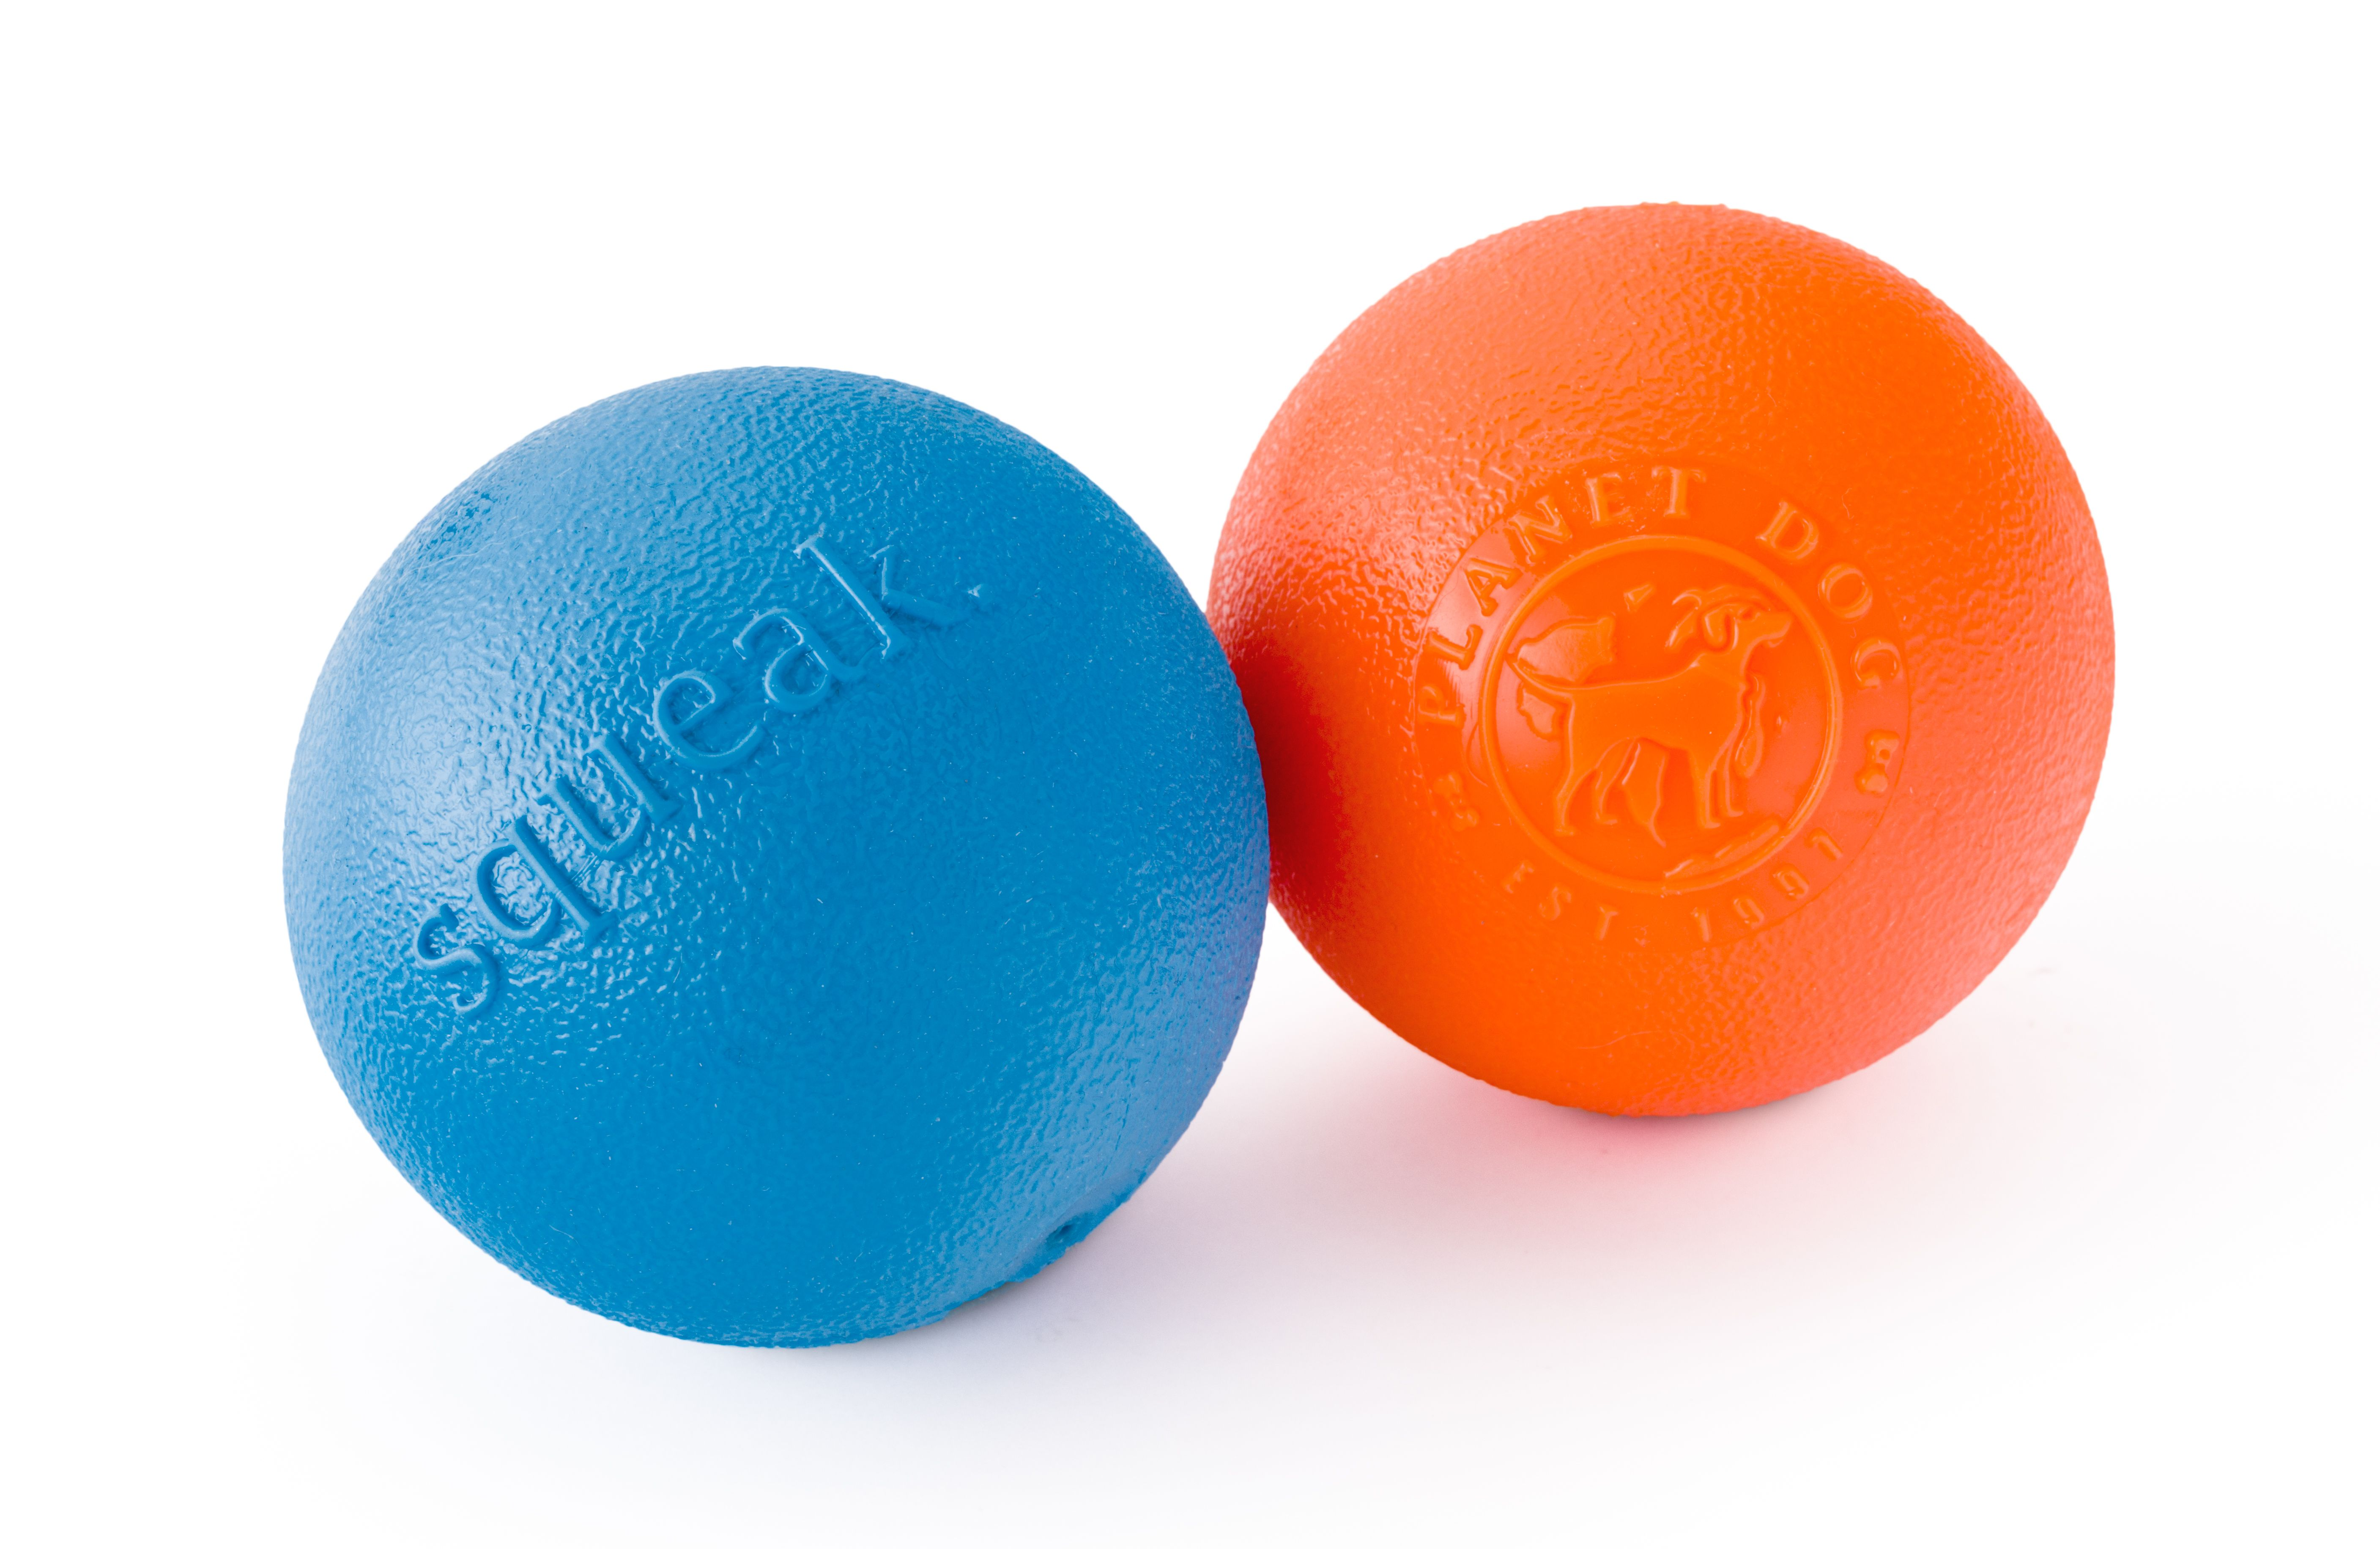 3 Quot Available In 2 Colors Like All Orbee Tuff Toys Squeak Is